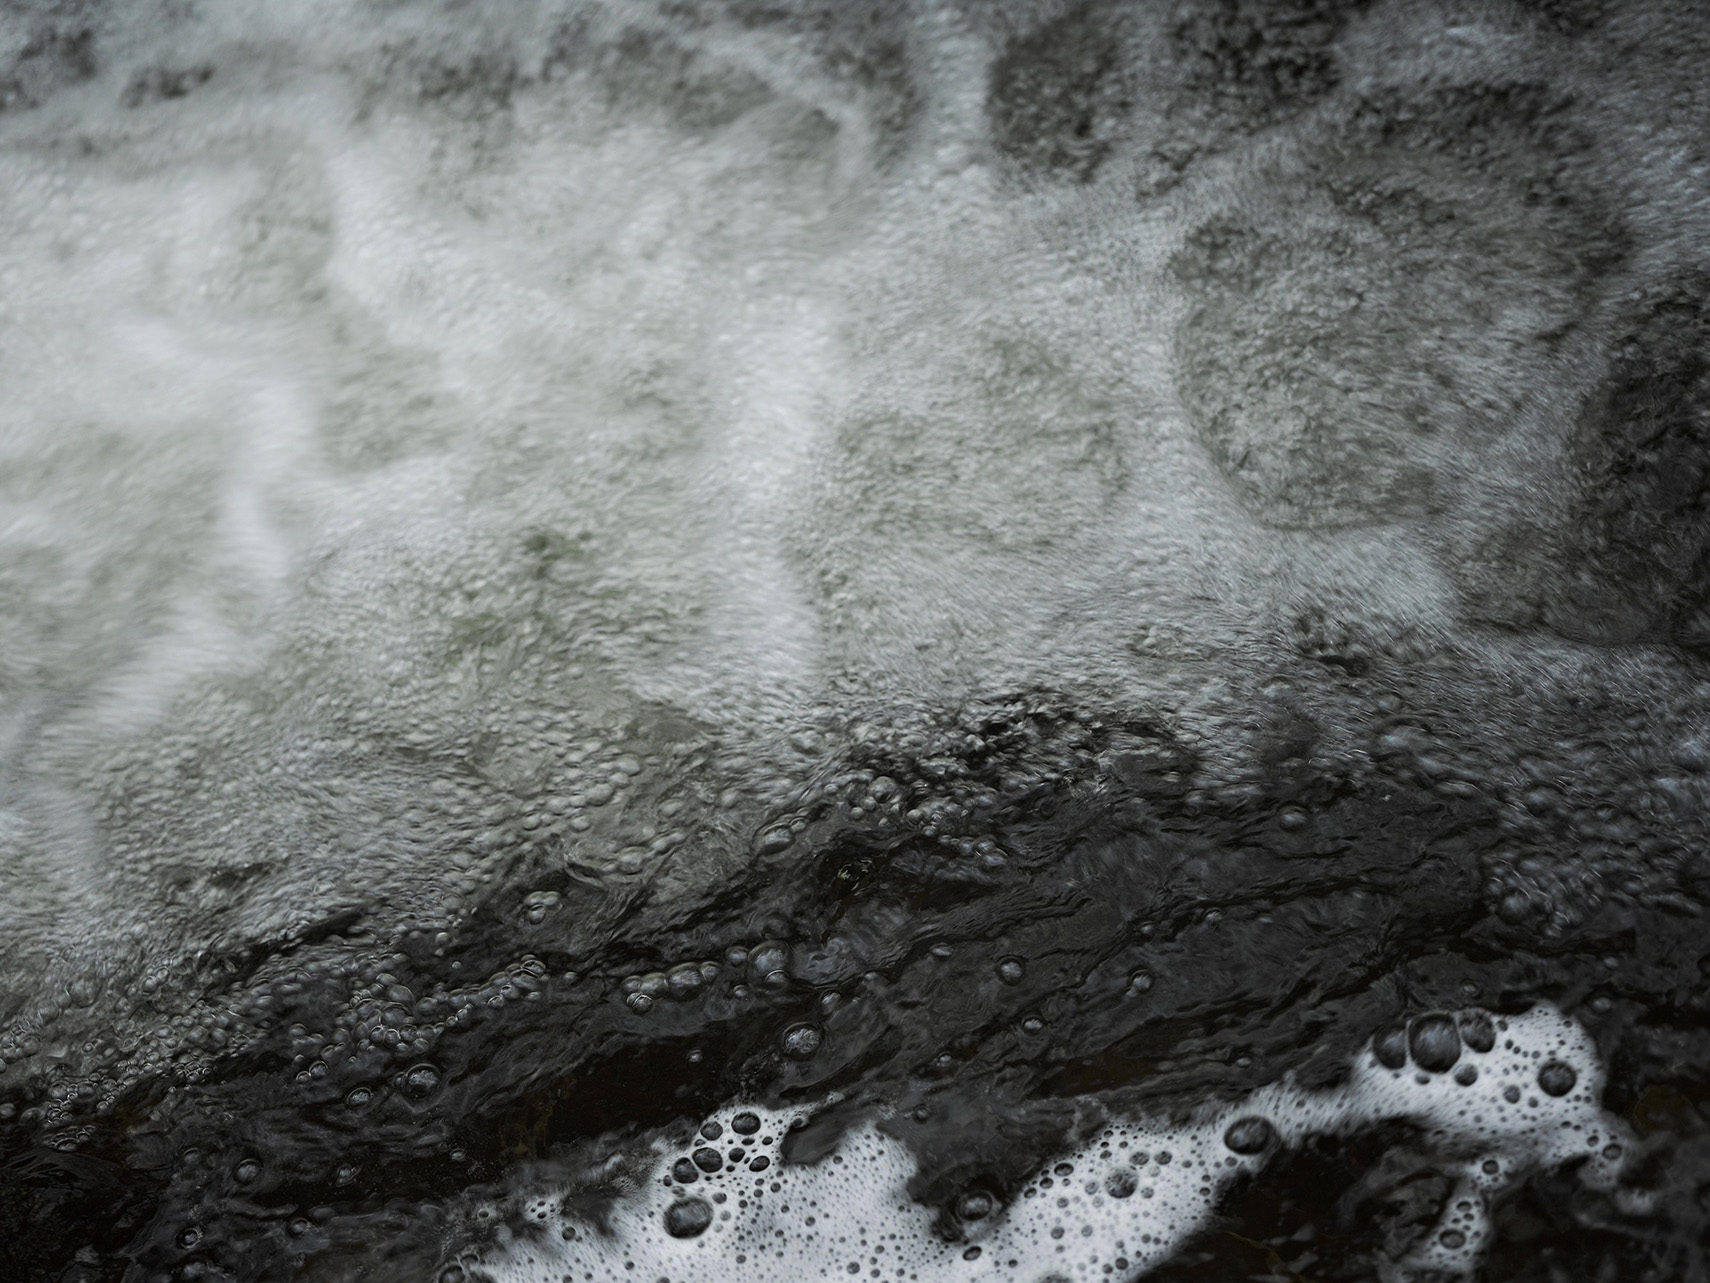 Image from the series  Deluge